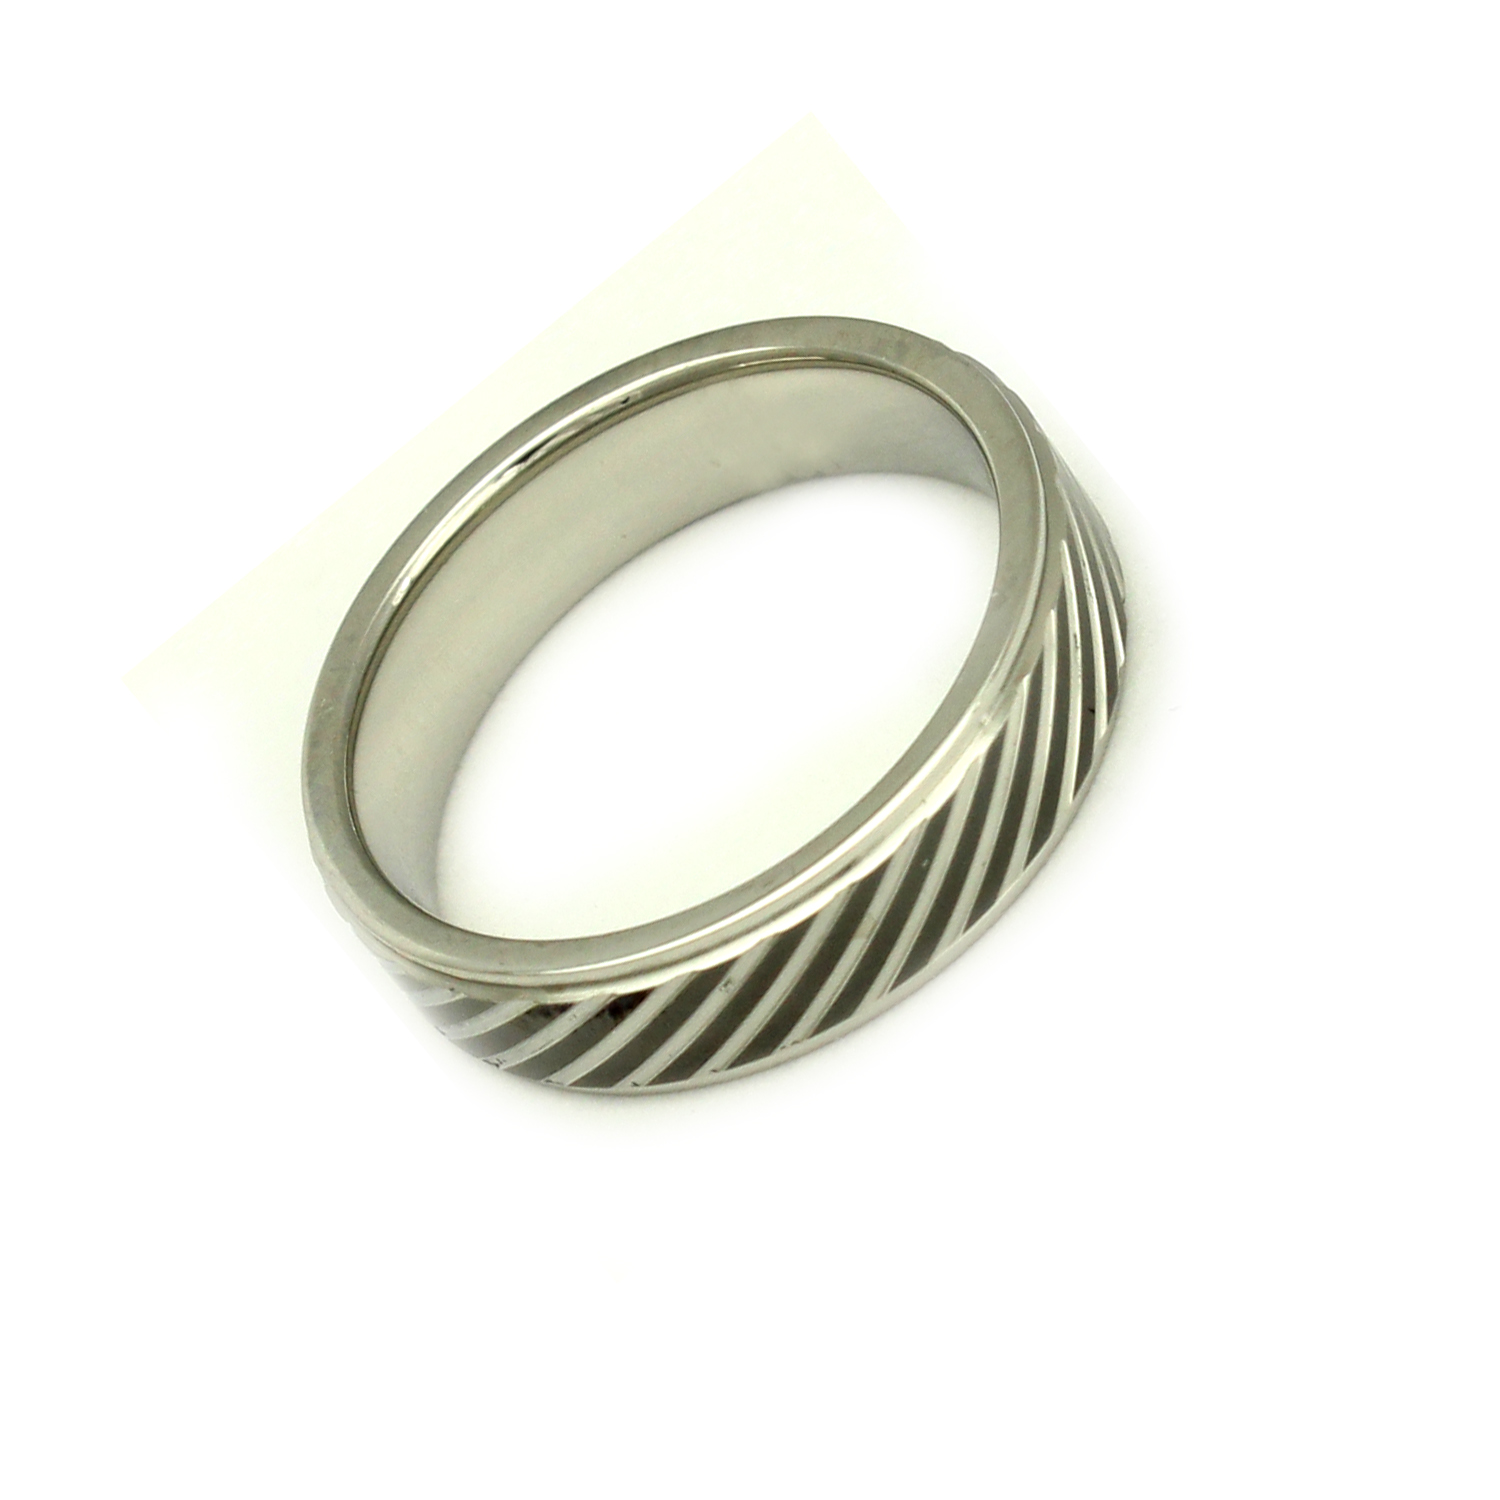 316L Stainless Steel and Black Elegant Diagonal Trendy Fashion Ring, Size 6.5